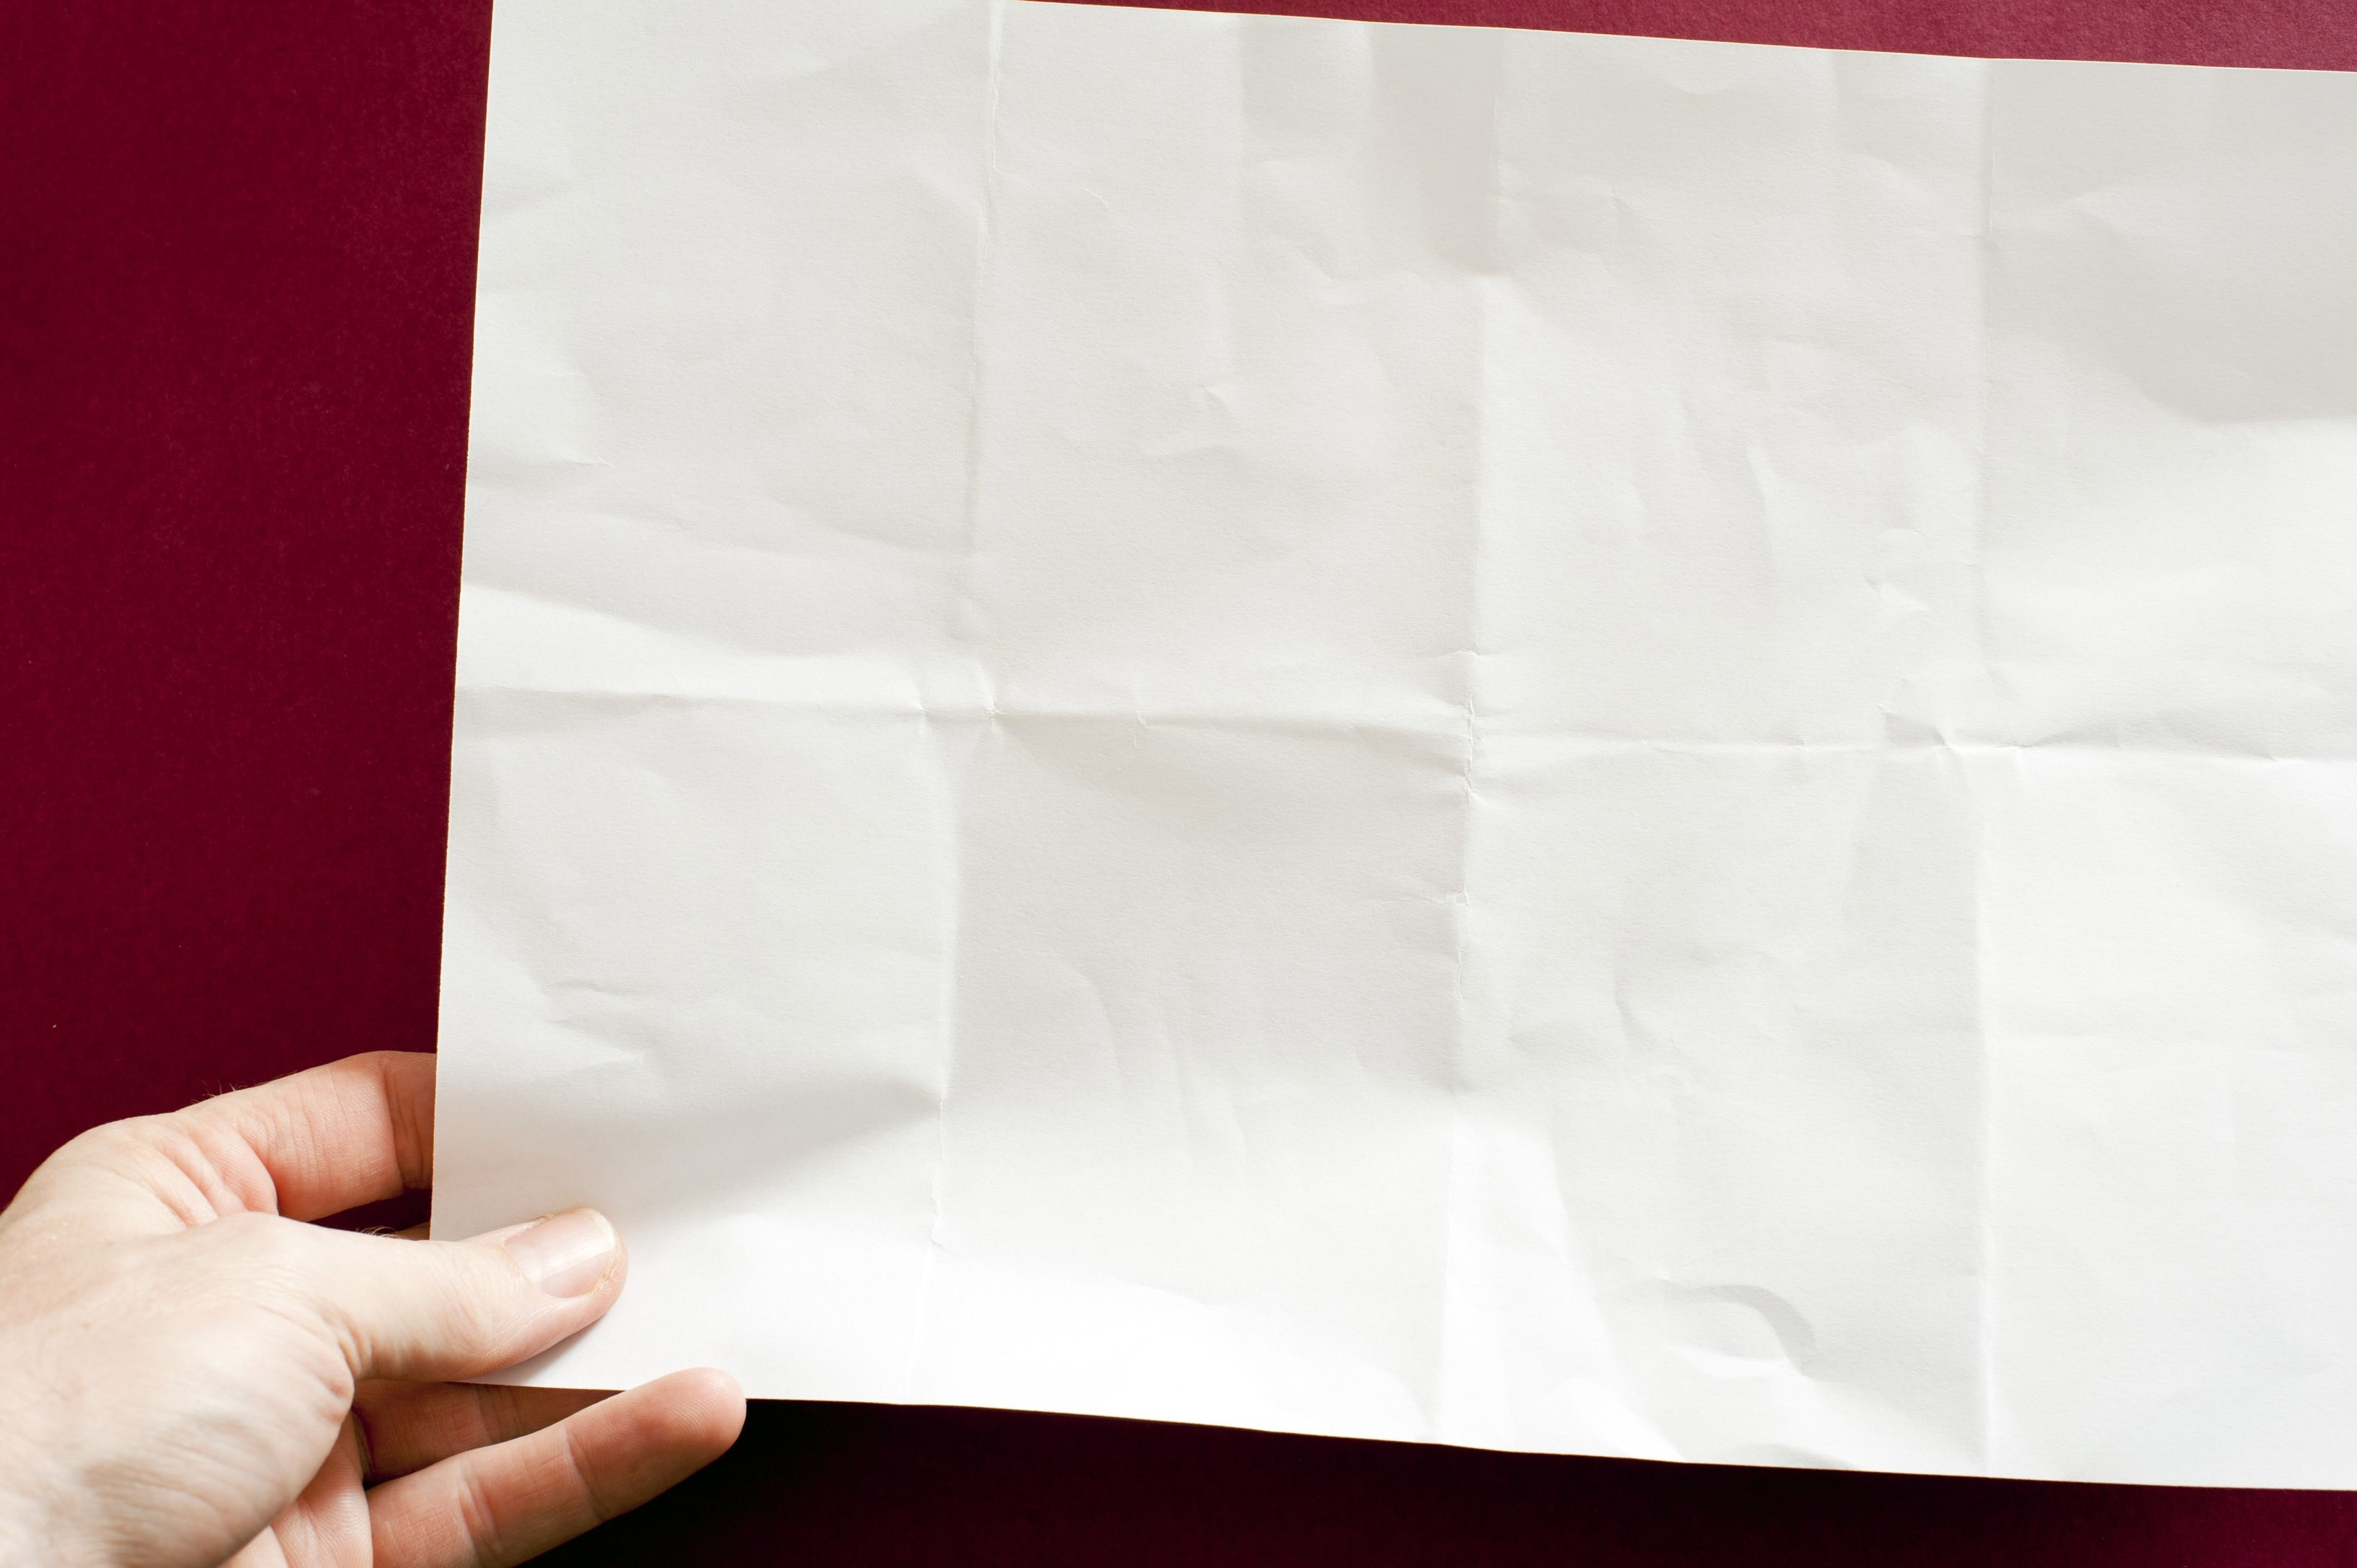 a hand holding a sheet of plain white paper with crease marks